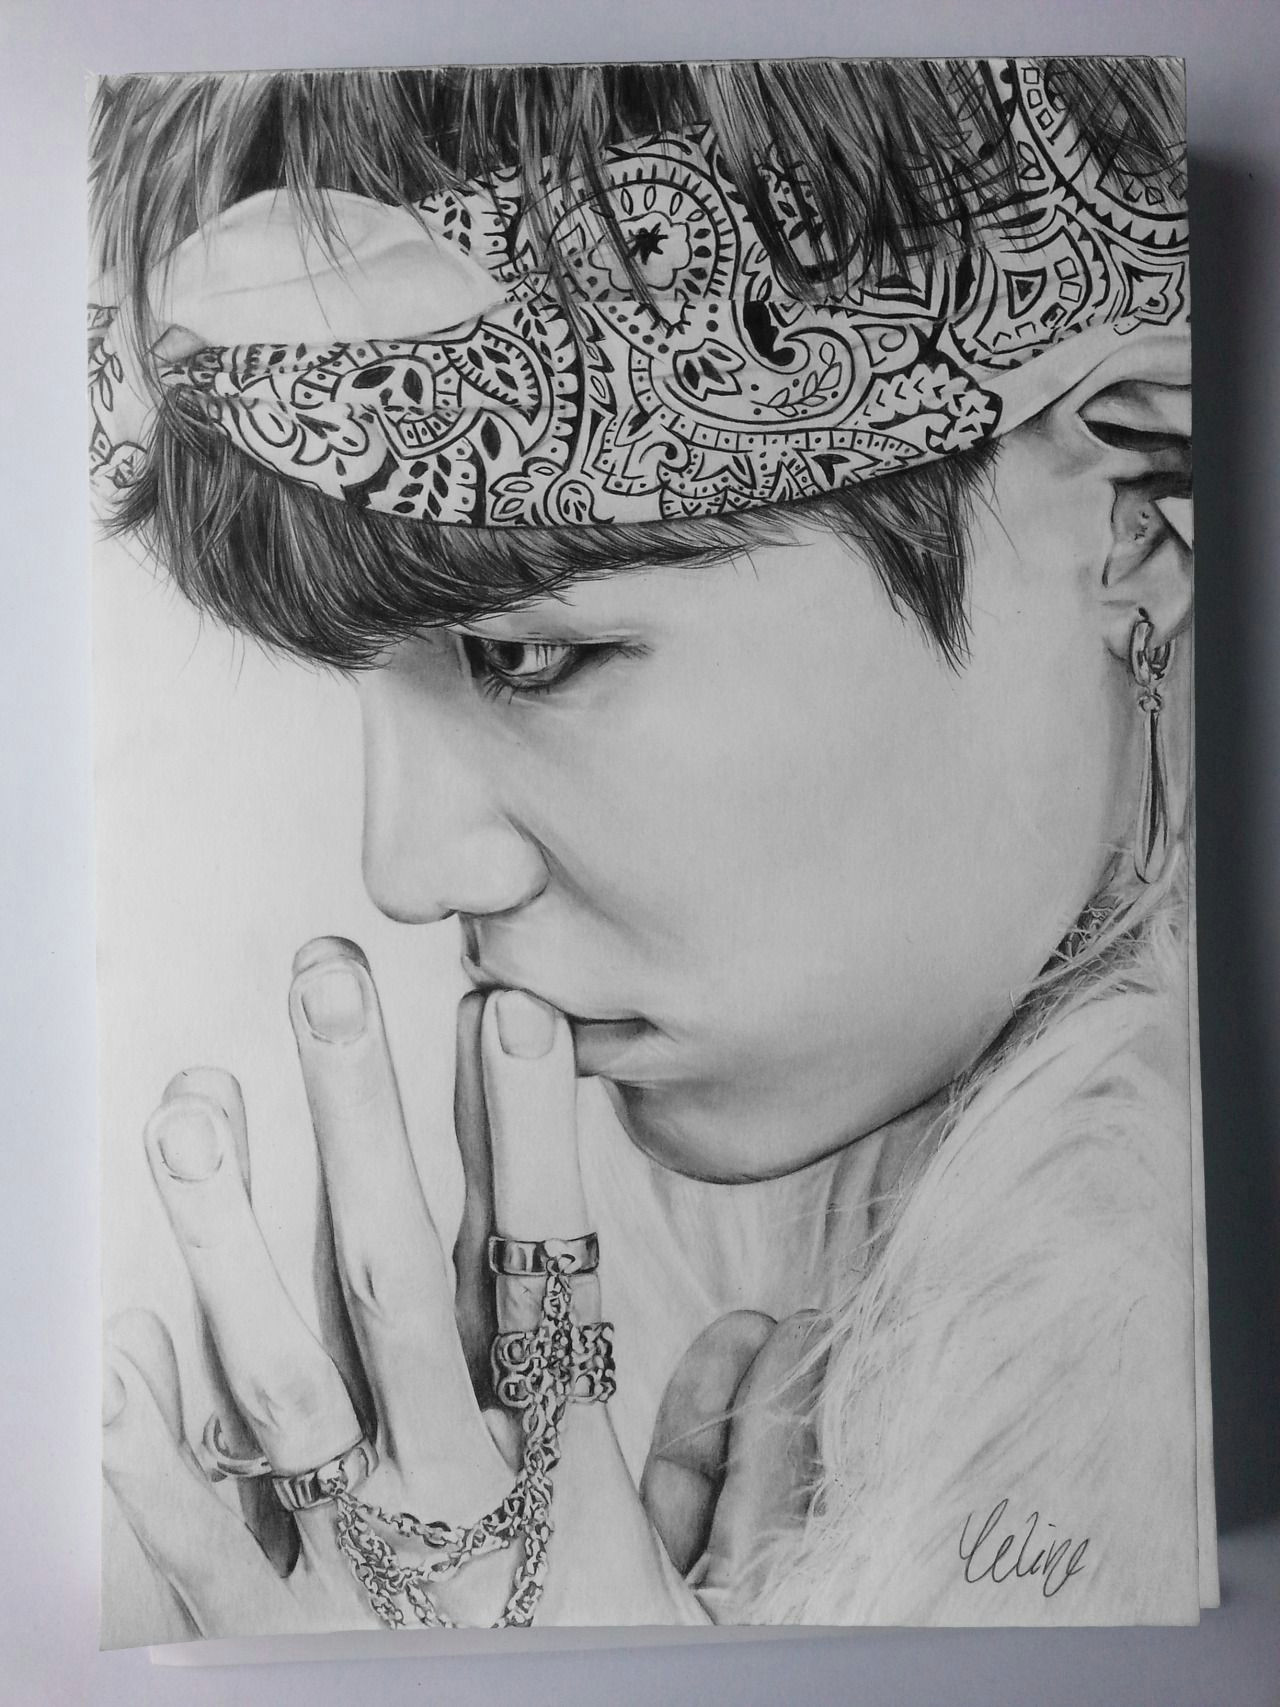 whoever drew this is amazing a sometime we are like stars we fall so someone s wish can come true a